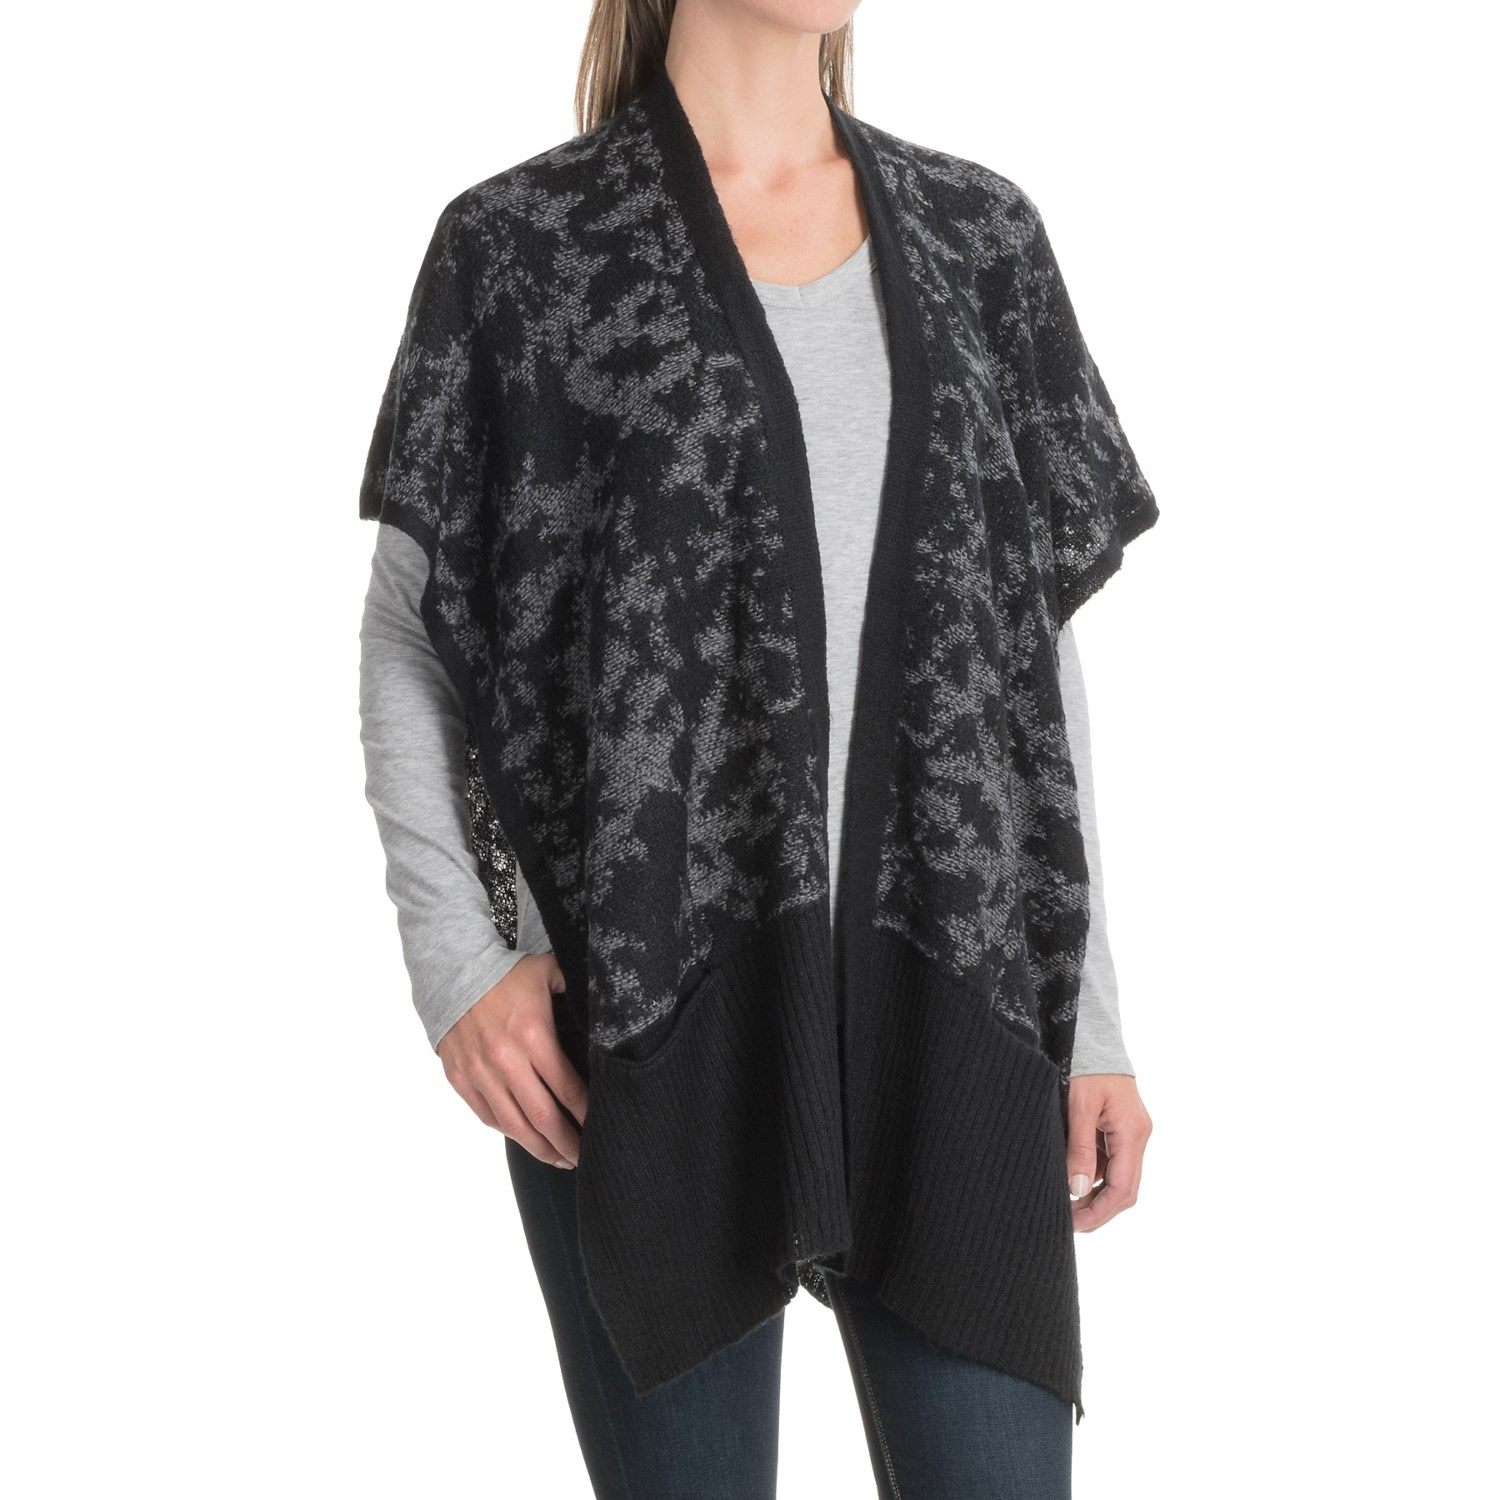 Apropos Mezzanine Cardigan Sweater (For Women) - Save 71%